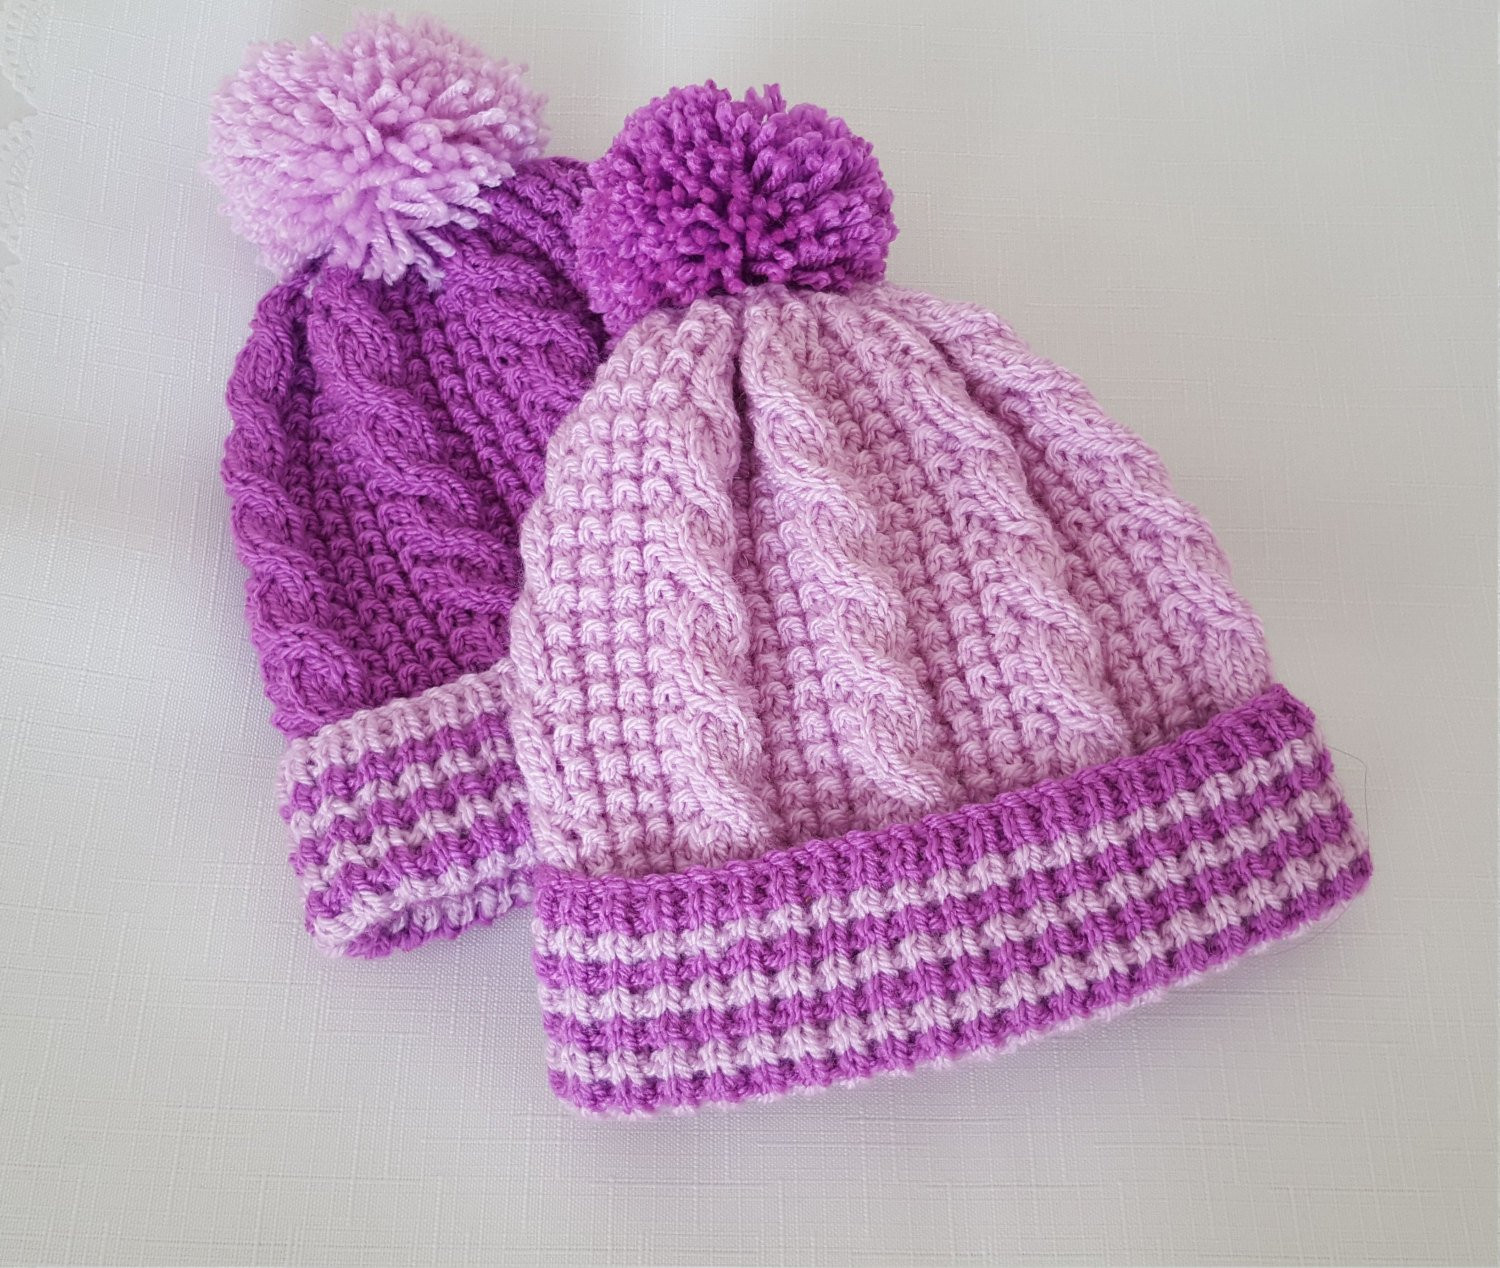 Awesome Baby Knitting Pattern Cable Baby Hat Download Pdf Free Baby Knitting Patterns to Download Of Attractive 49 Ideas Free Baby Knitting Patterns to Download